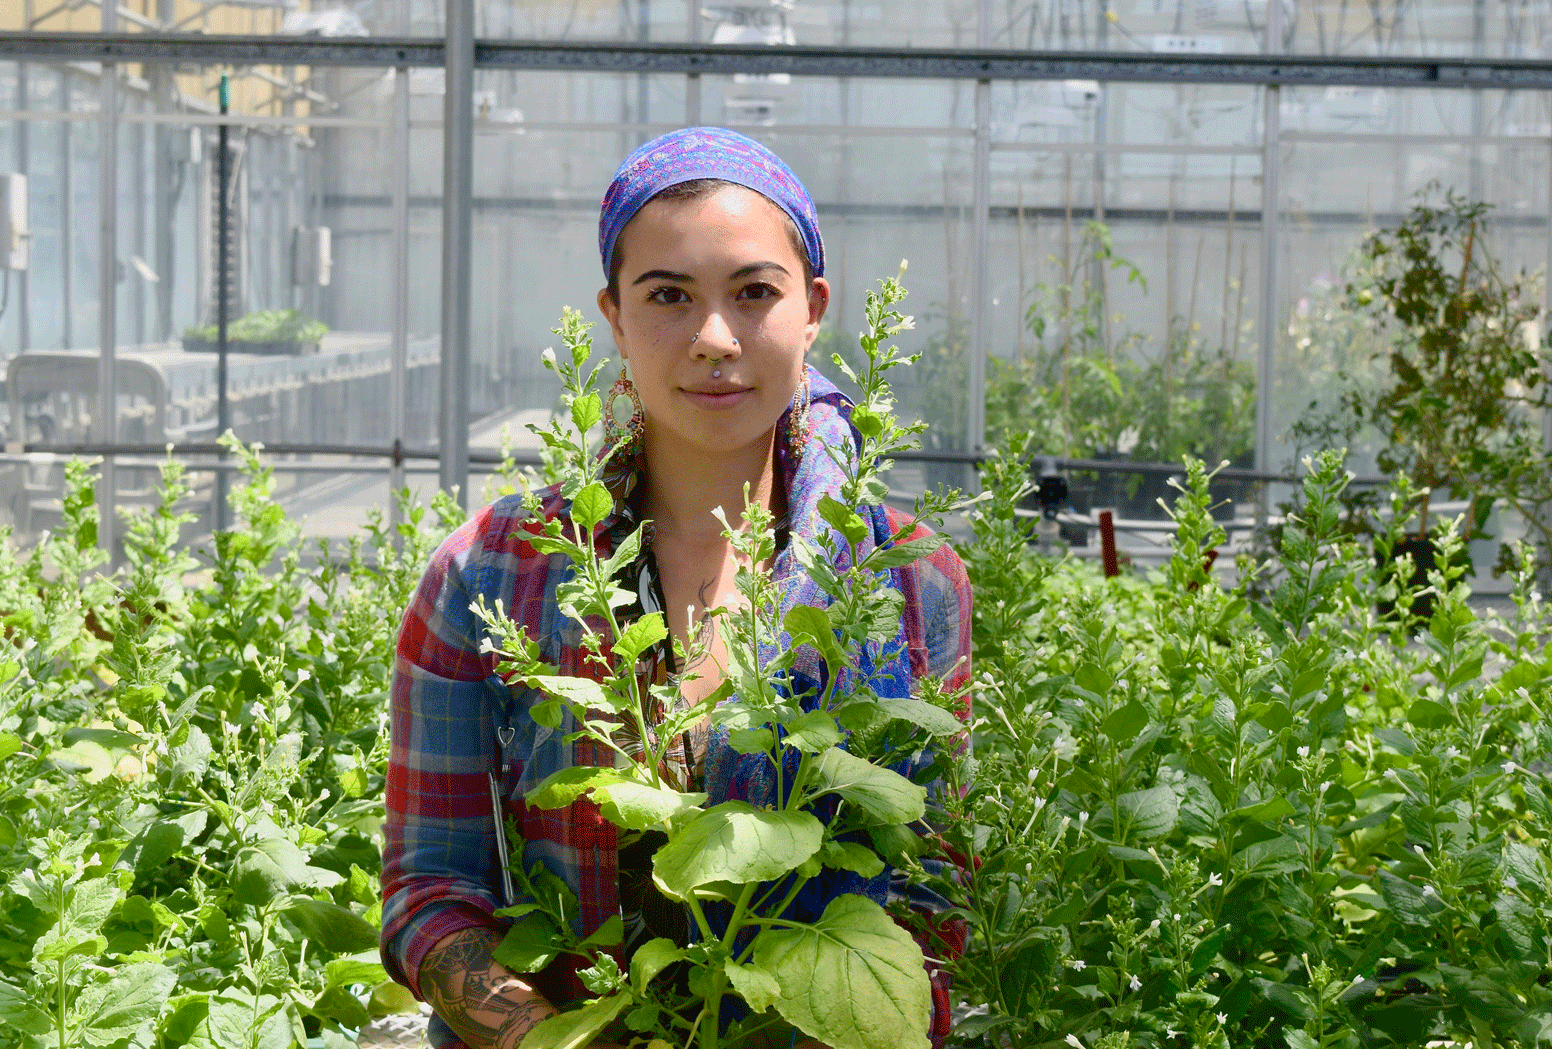 A young person standing in a greenhouse with research plants